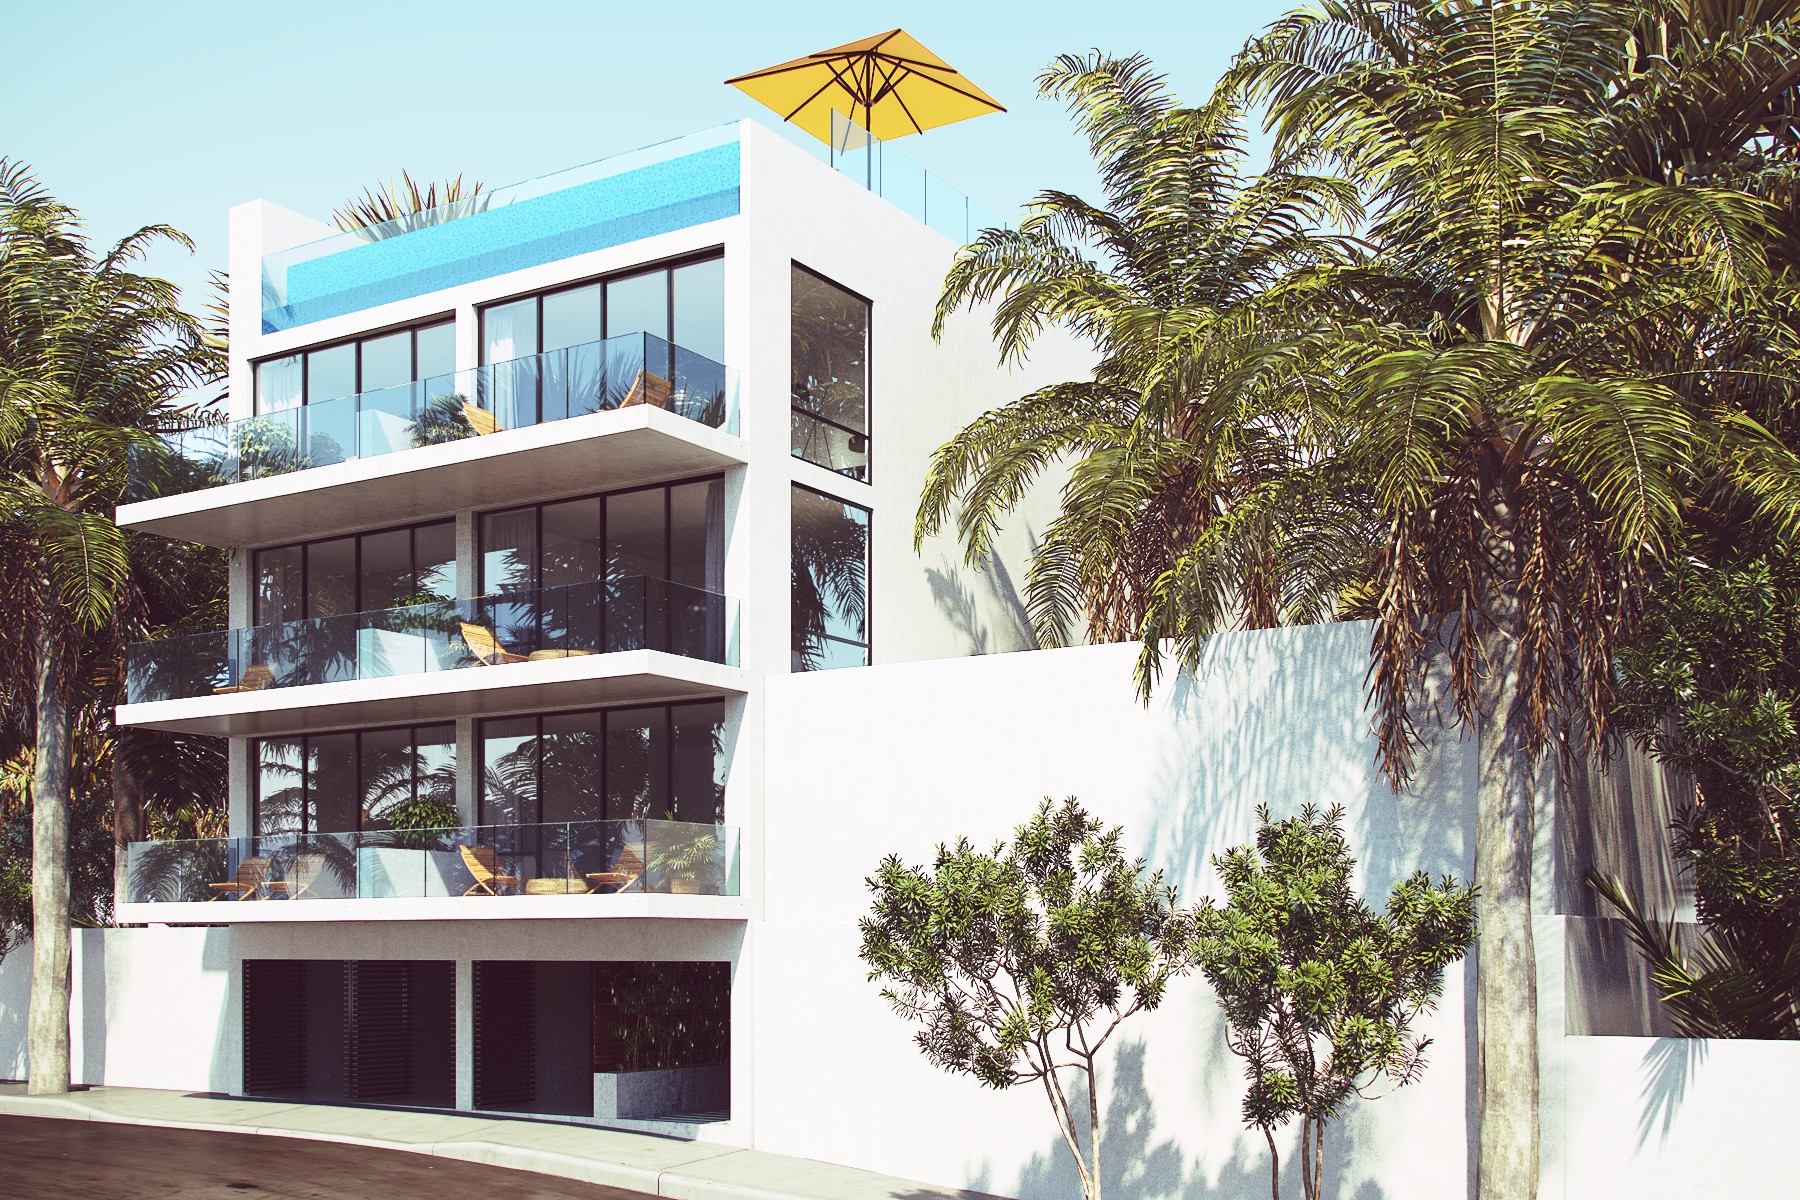 Nhà chung cư vì Bán tại LIFESTYLE CONDOMINIUM 88 Street, between 5th Ave. and 10th Ave Lot 08 Playa Del Carmen, Quintana Roo, 77710 Mexico